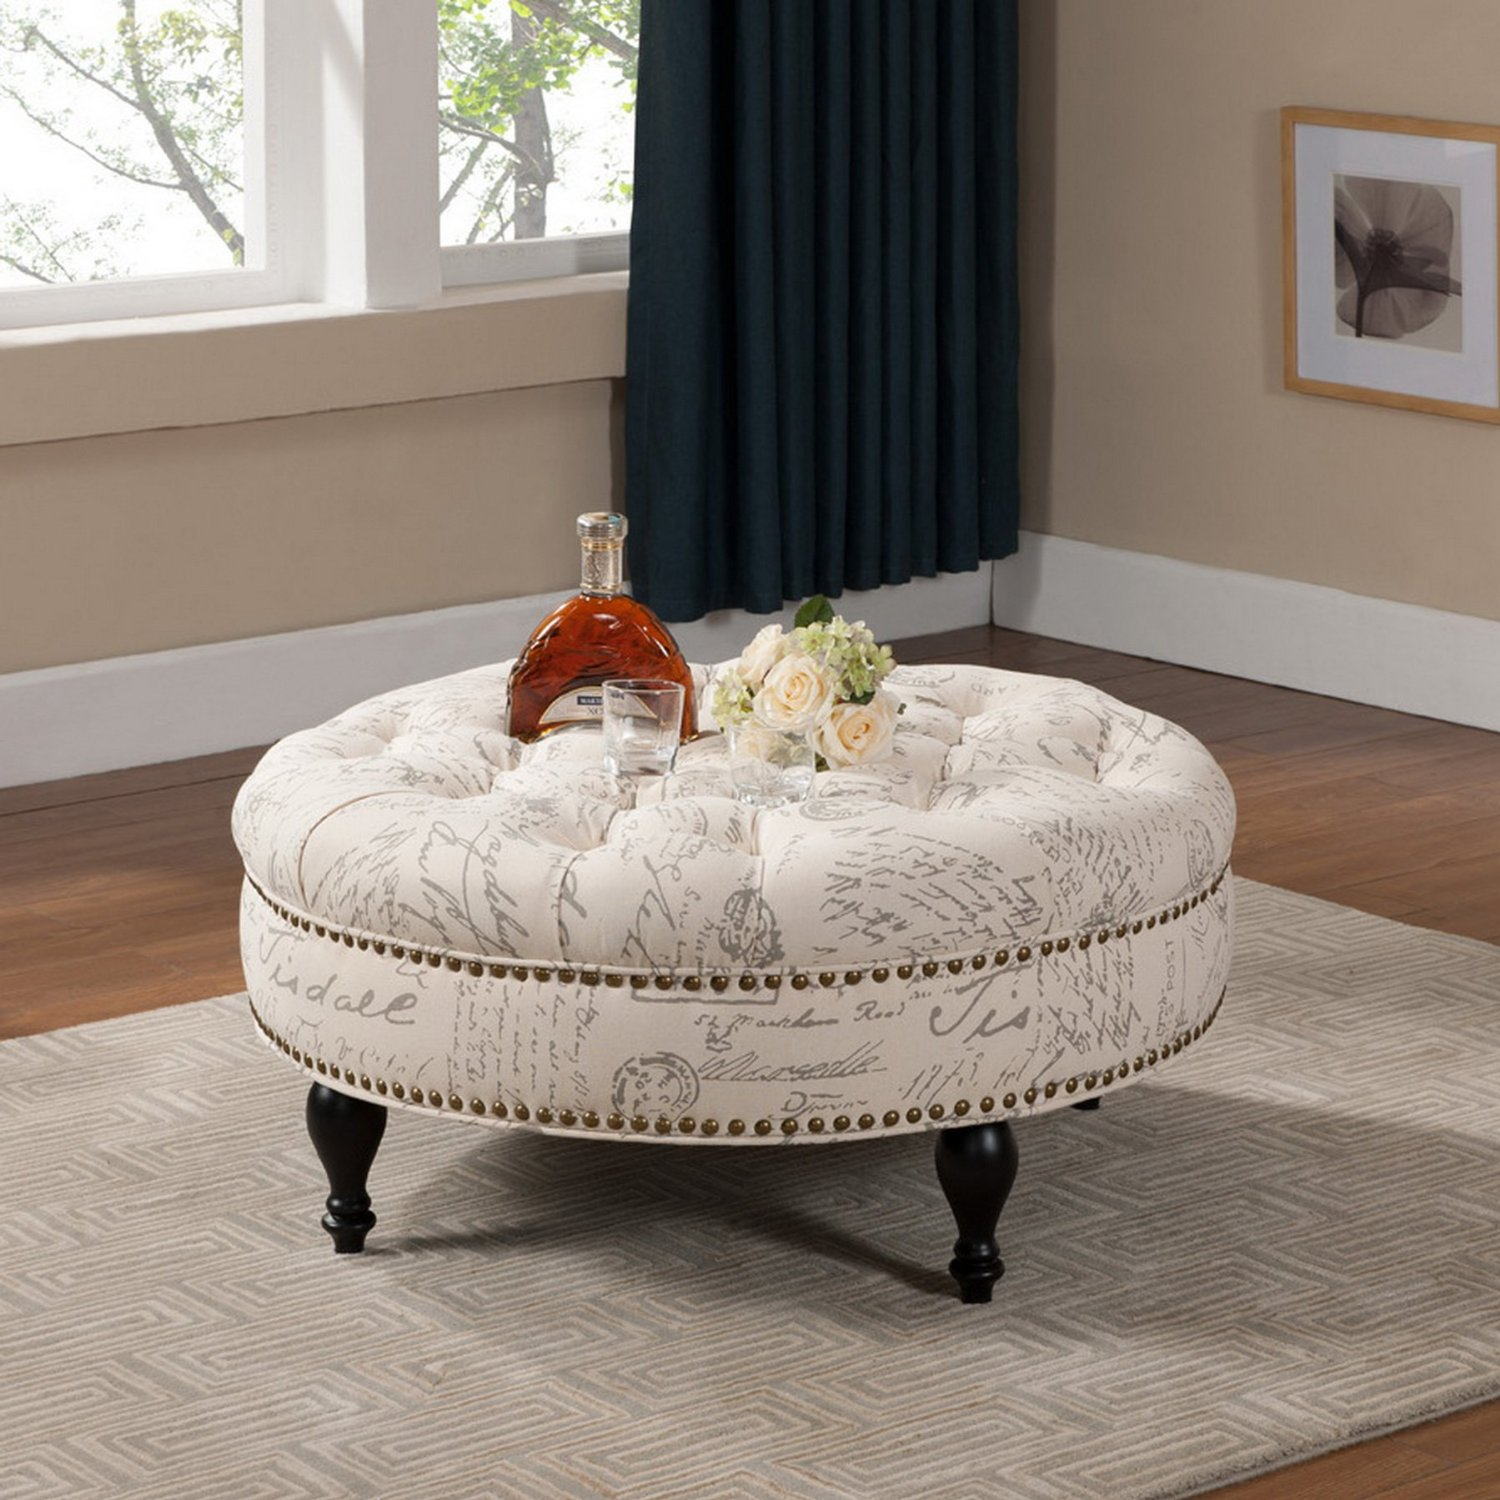 Round Tufted Ottoman Coffee Table Round Tufted Coffee Table Round Tufted Leather Coffee Table Tufted Circular Ottoman (Image 6 of 10)